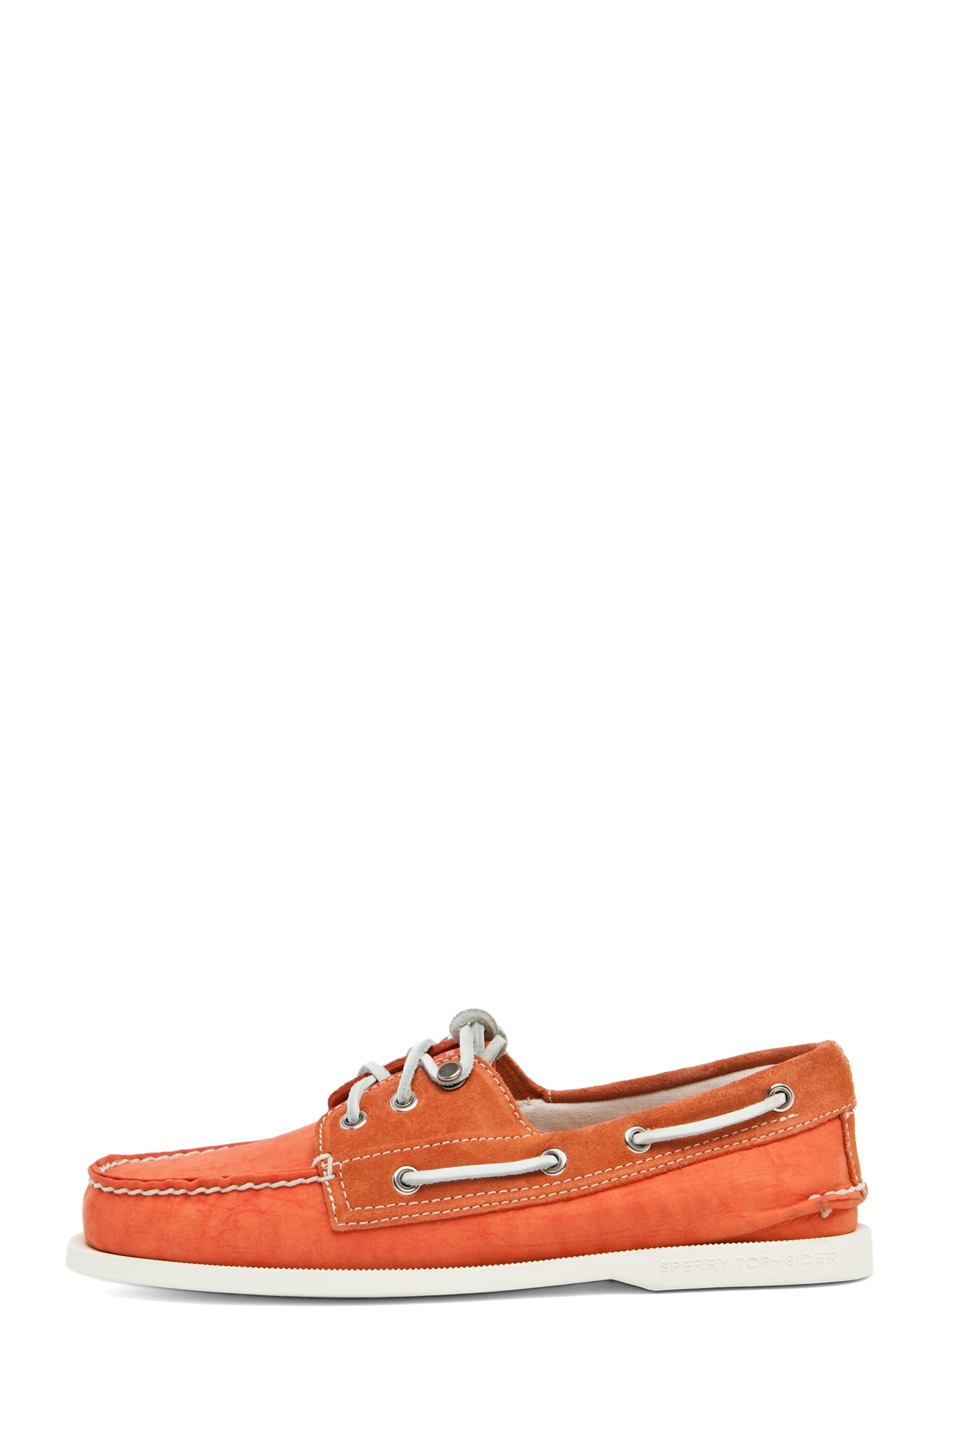 Image 1 of Band of Outsiders x Sperry Top-Sider 3 Eye Boat Shoe in Orange